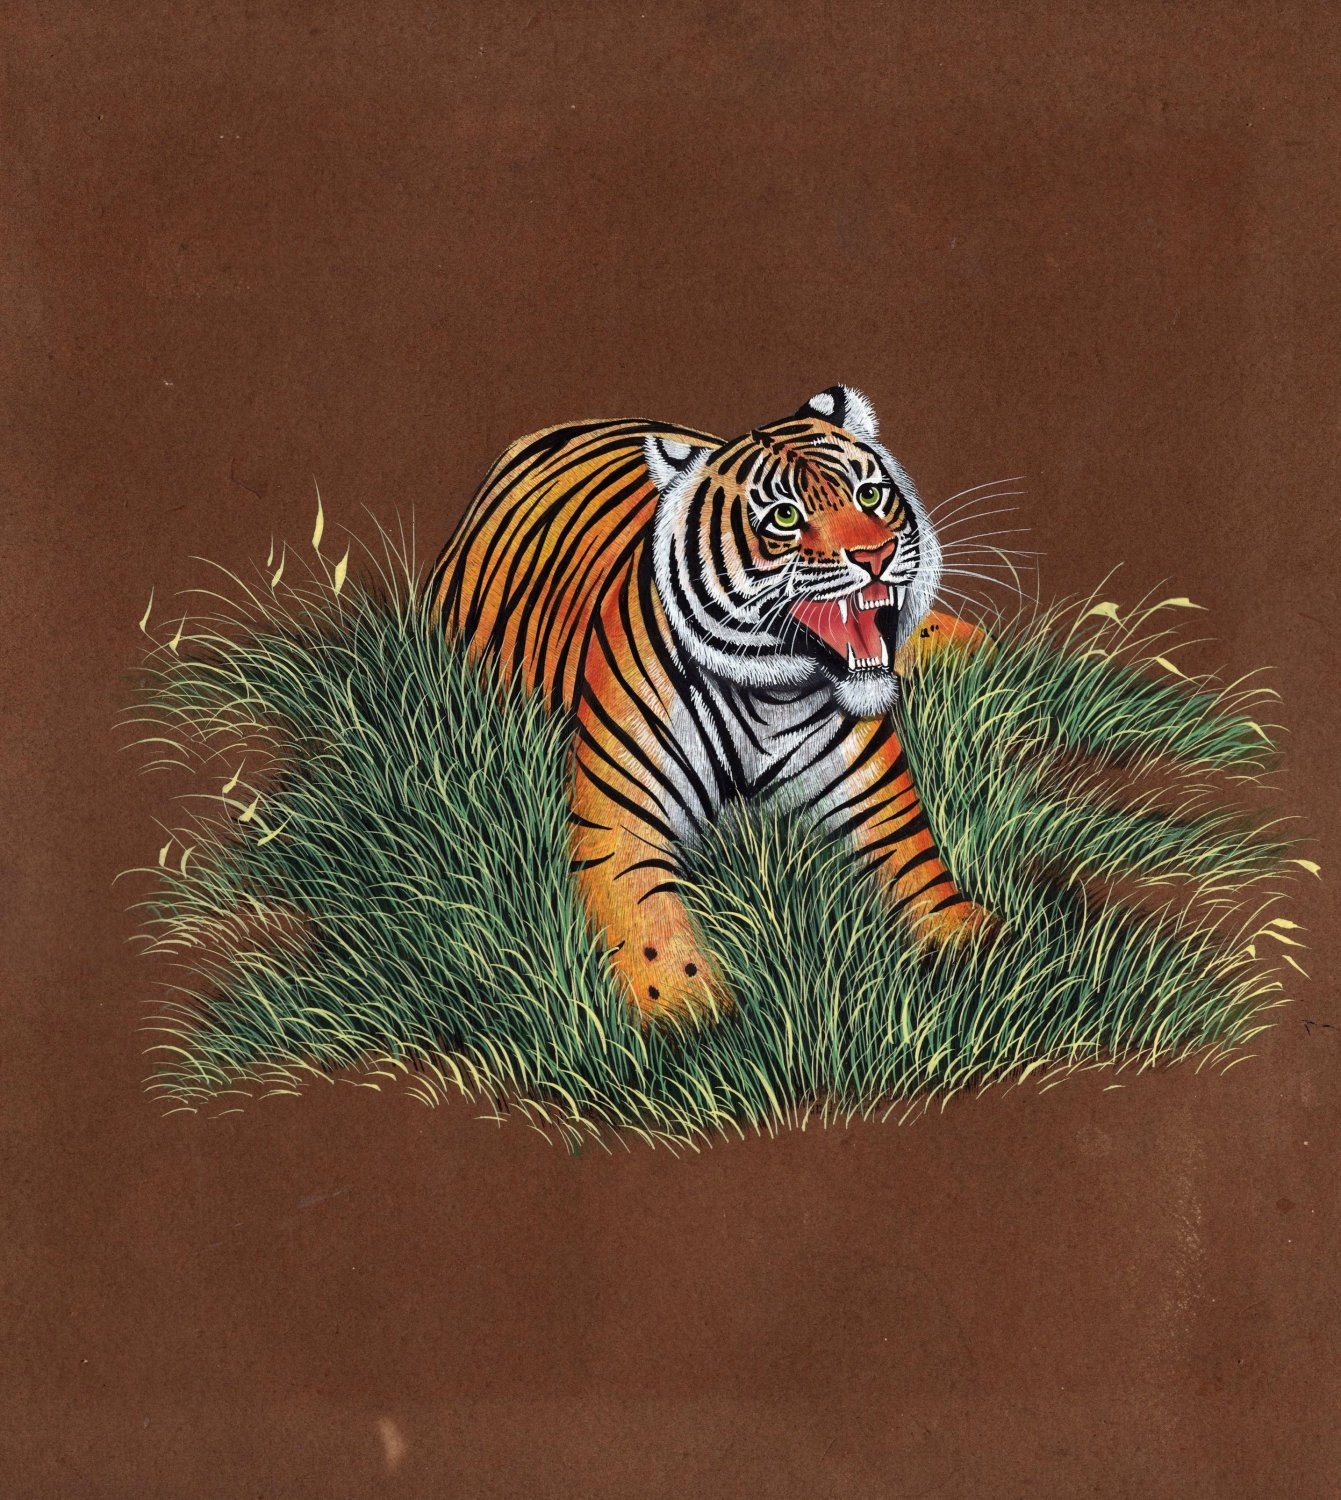 Bengal Tiger Painting Handpainted Indian Wildcat Animal Watercolor Miniature Art